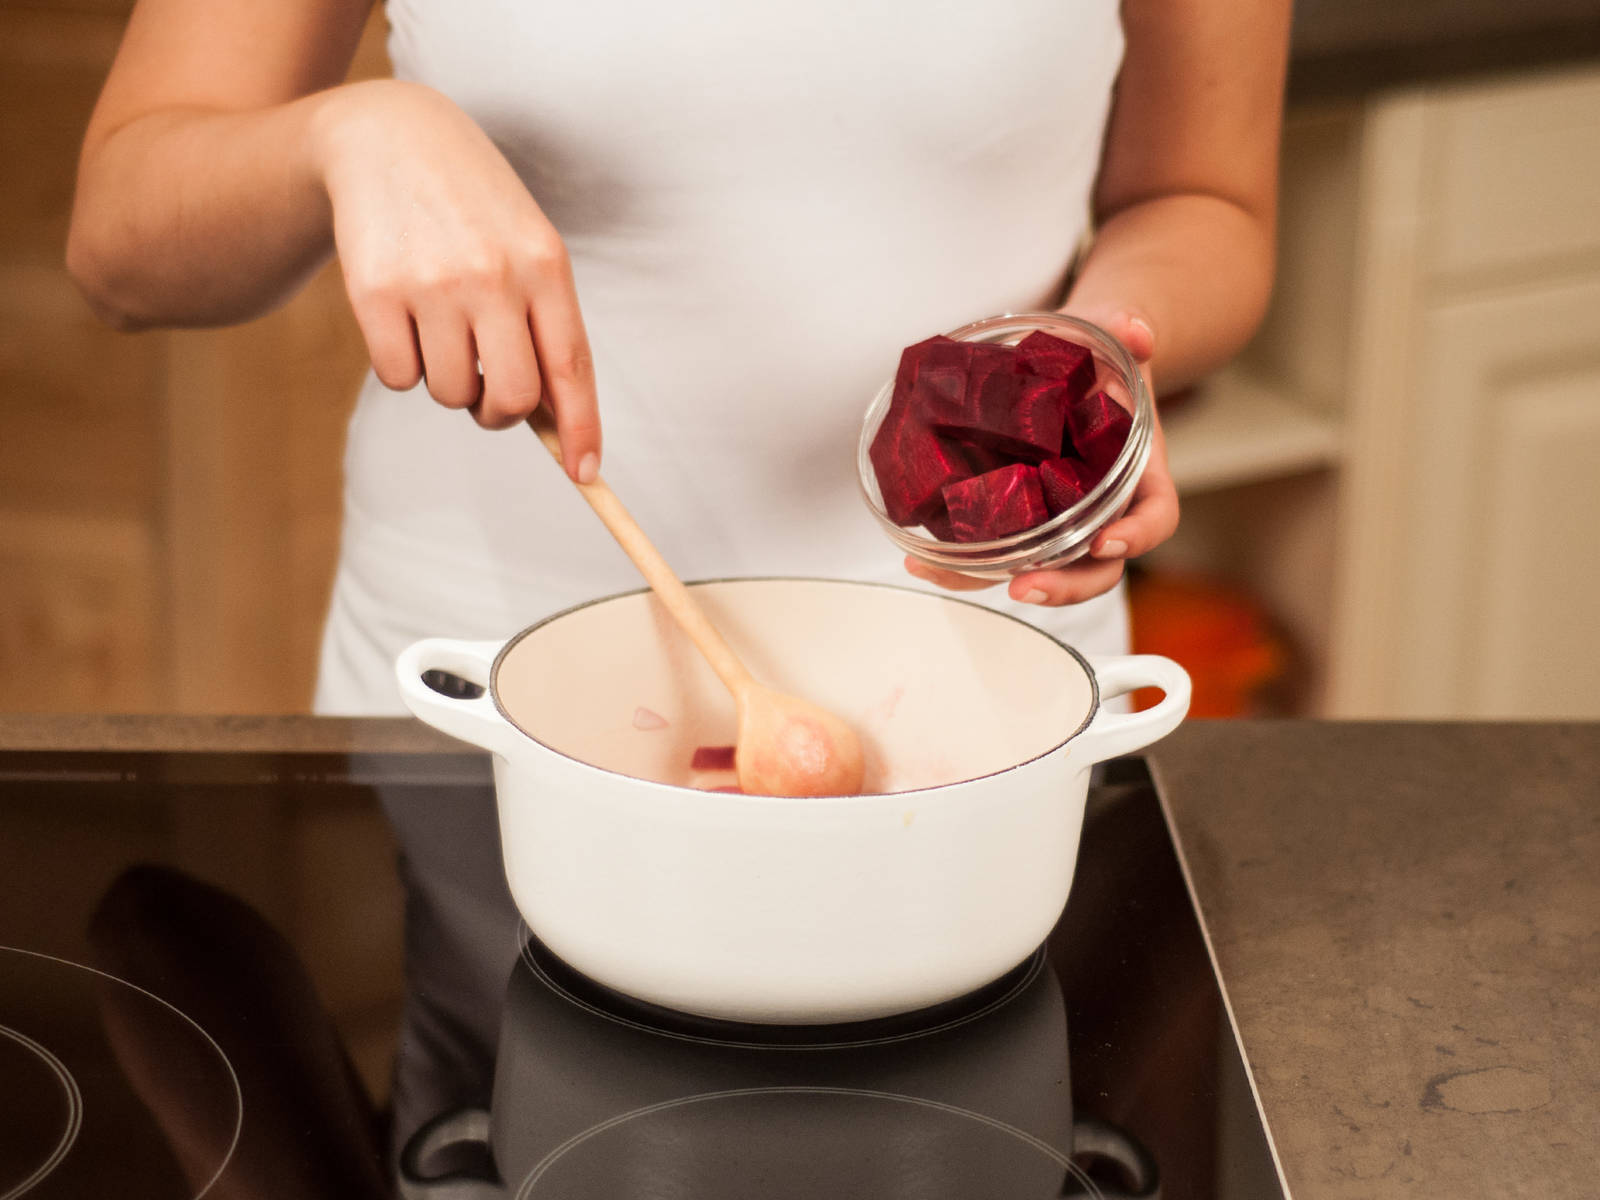 Add butter to a large saucepan. Add onion and garlic and sauté until translucent. Add beet and sauté for approx. 5 – 7 min. Season with salt and pepper.